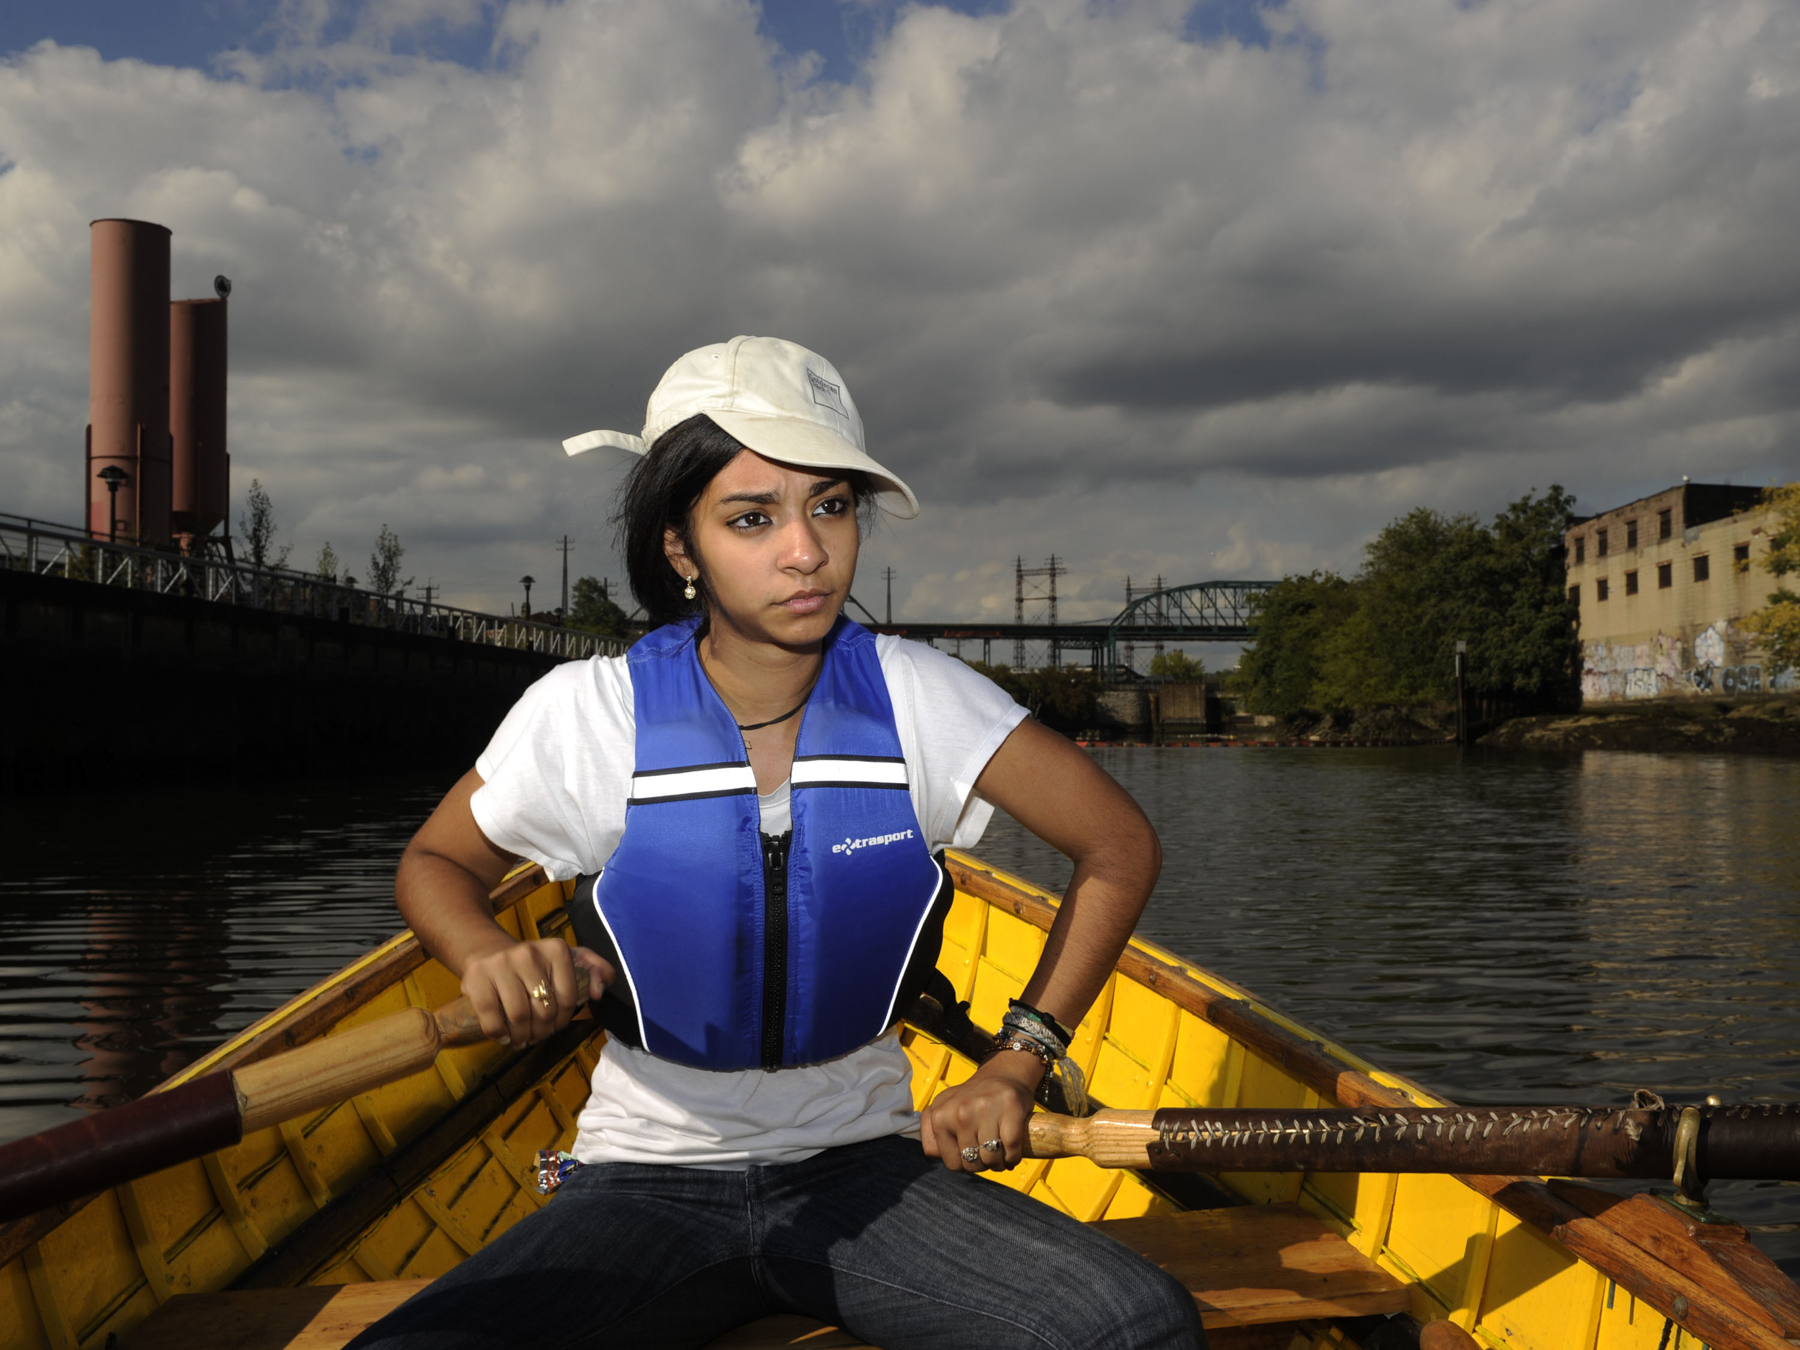 "Danise Infante, a high school student,  rows a boat she helped build, in the Bronx River.   She built the boat at an after school program called  ""Rocking the Boat,""  a program that teaches high school students how to build boats and teach the public about the Bronx River.  Access to the river had been blocked by dump sites and vacant lots.  Environmental community activists are transforming the river into a greenway zone.  Danise says her experience has helped turn her into an environmental activist."